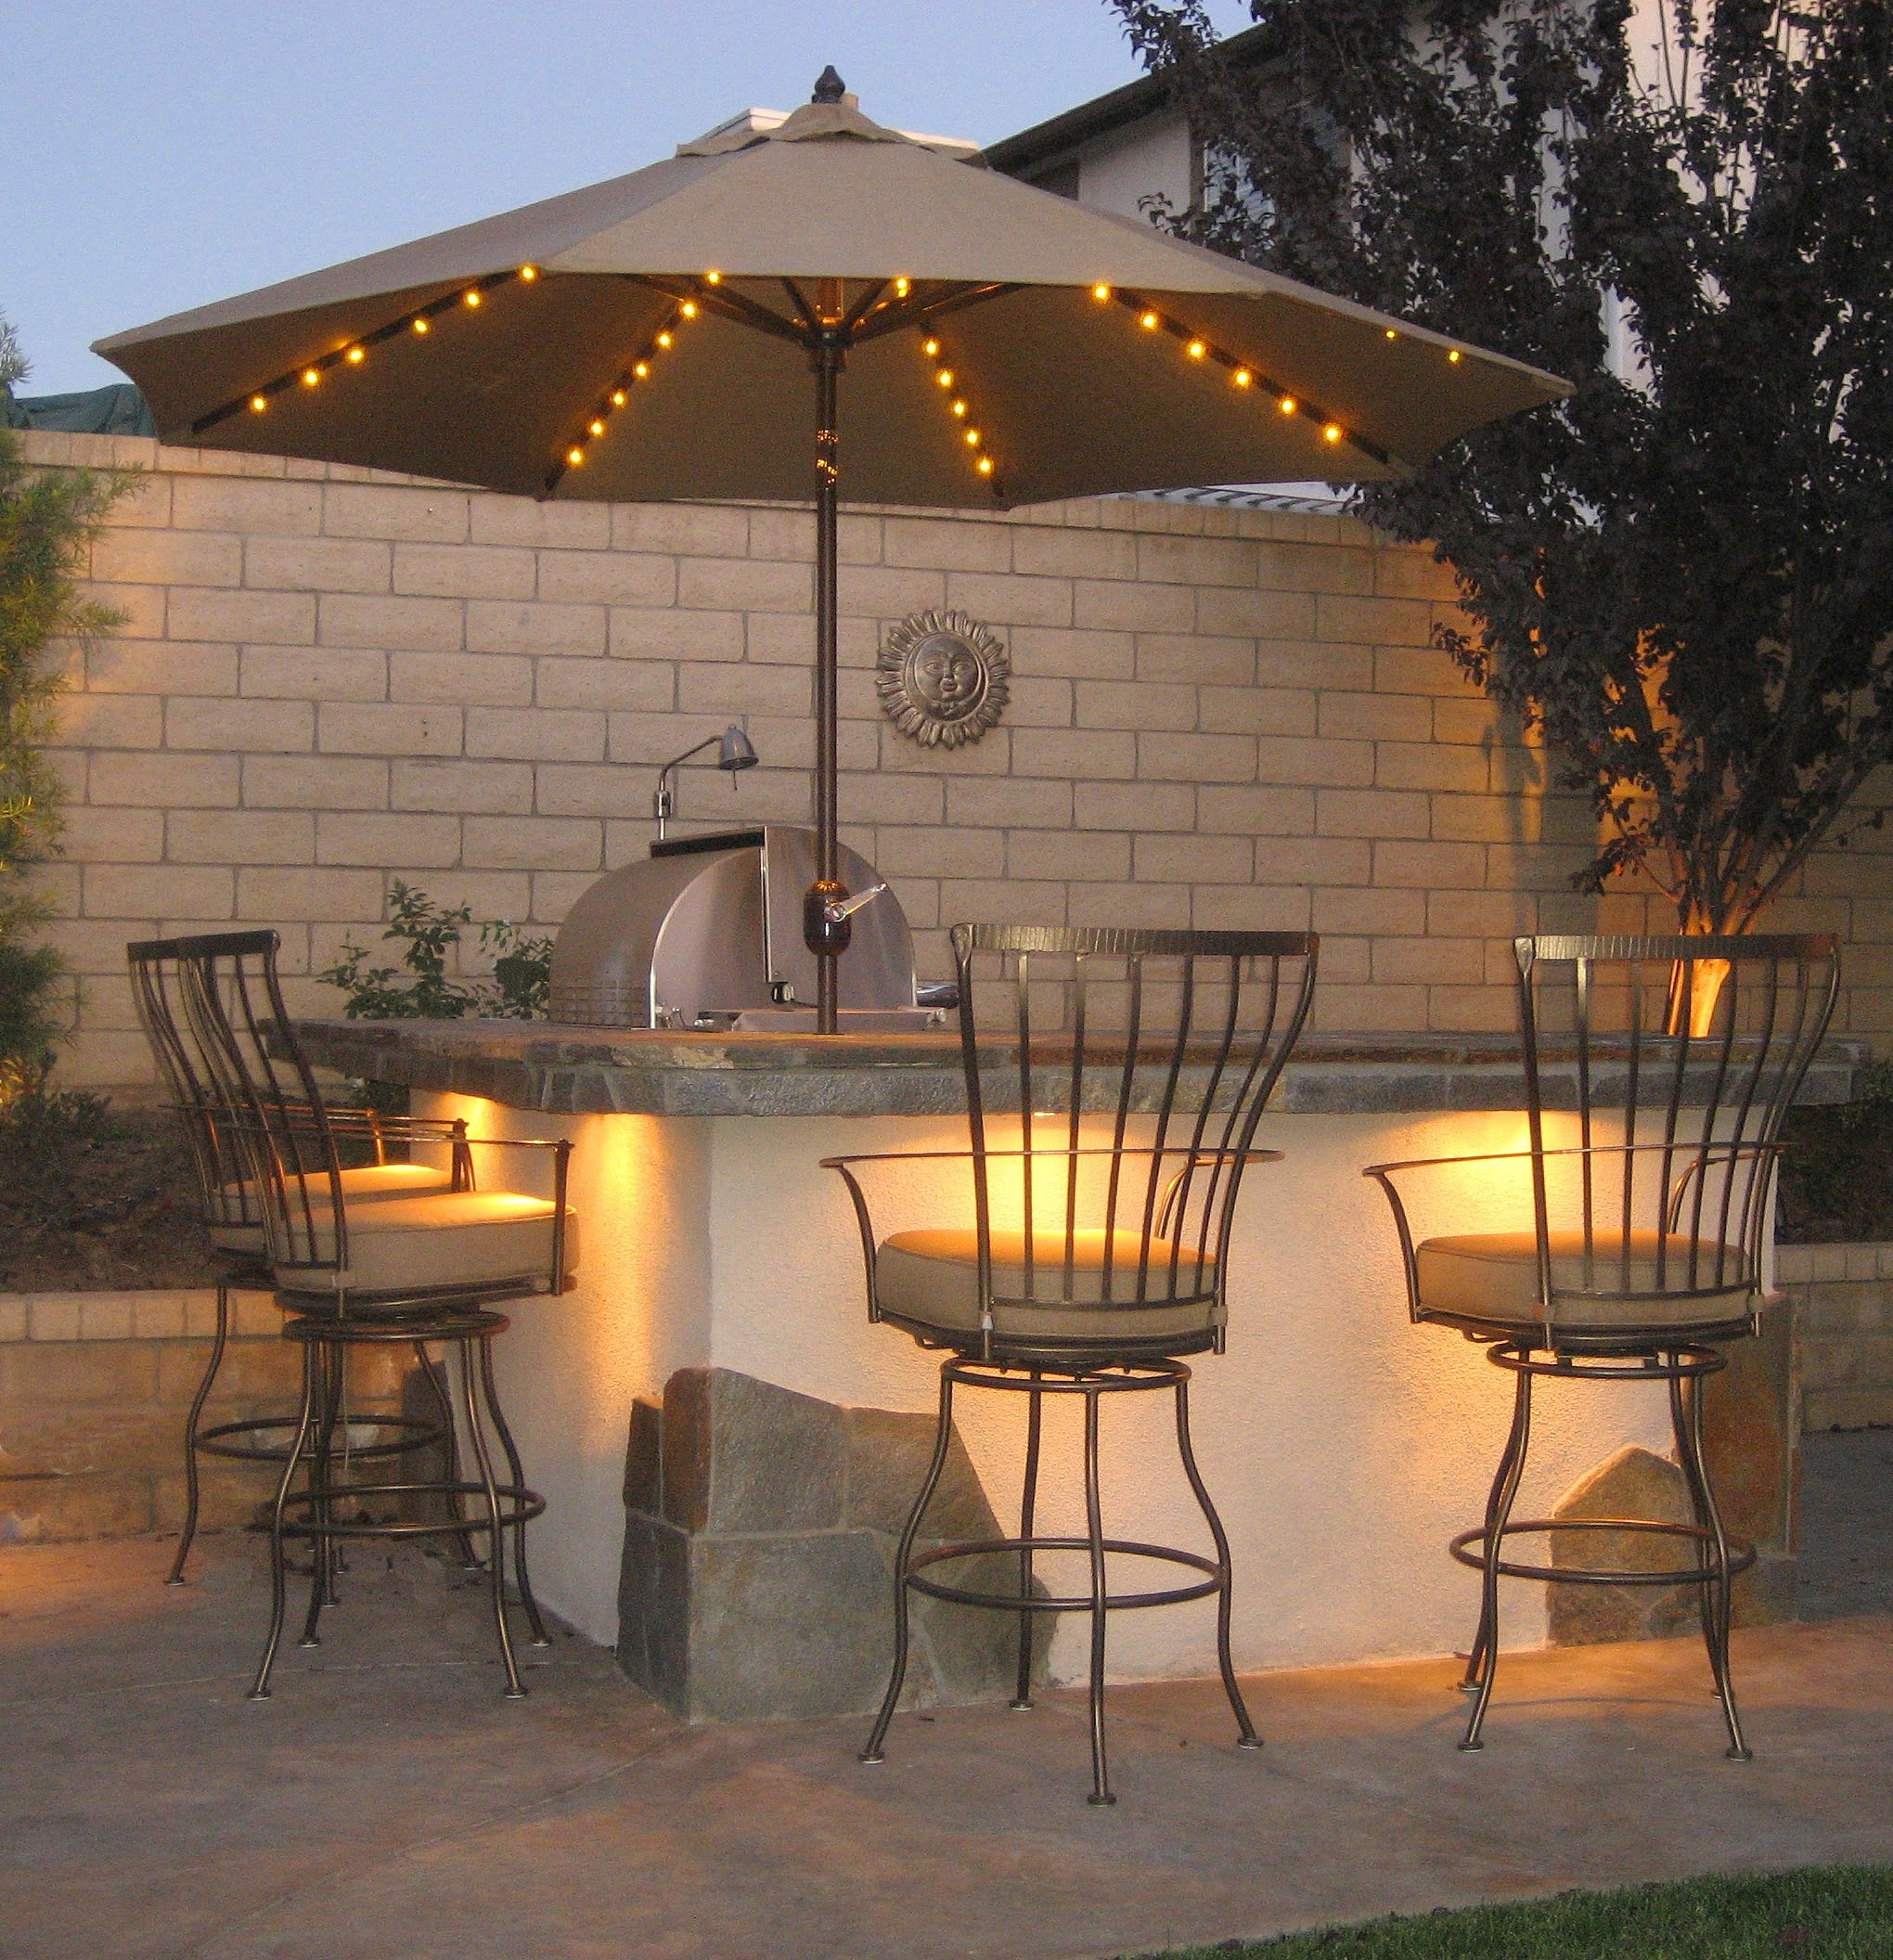 Lighted Patio Umbrellas Intended For Recent Lighted Patio Umbrellas — Mistikcamping Home Design : Different (View 9 of 20)